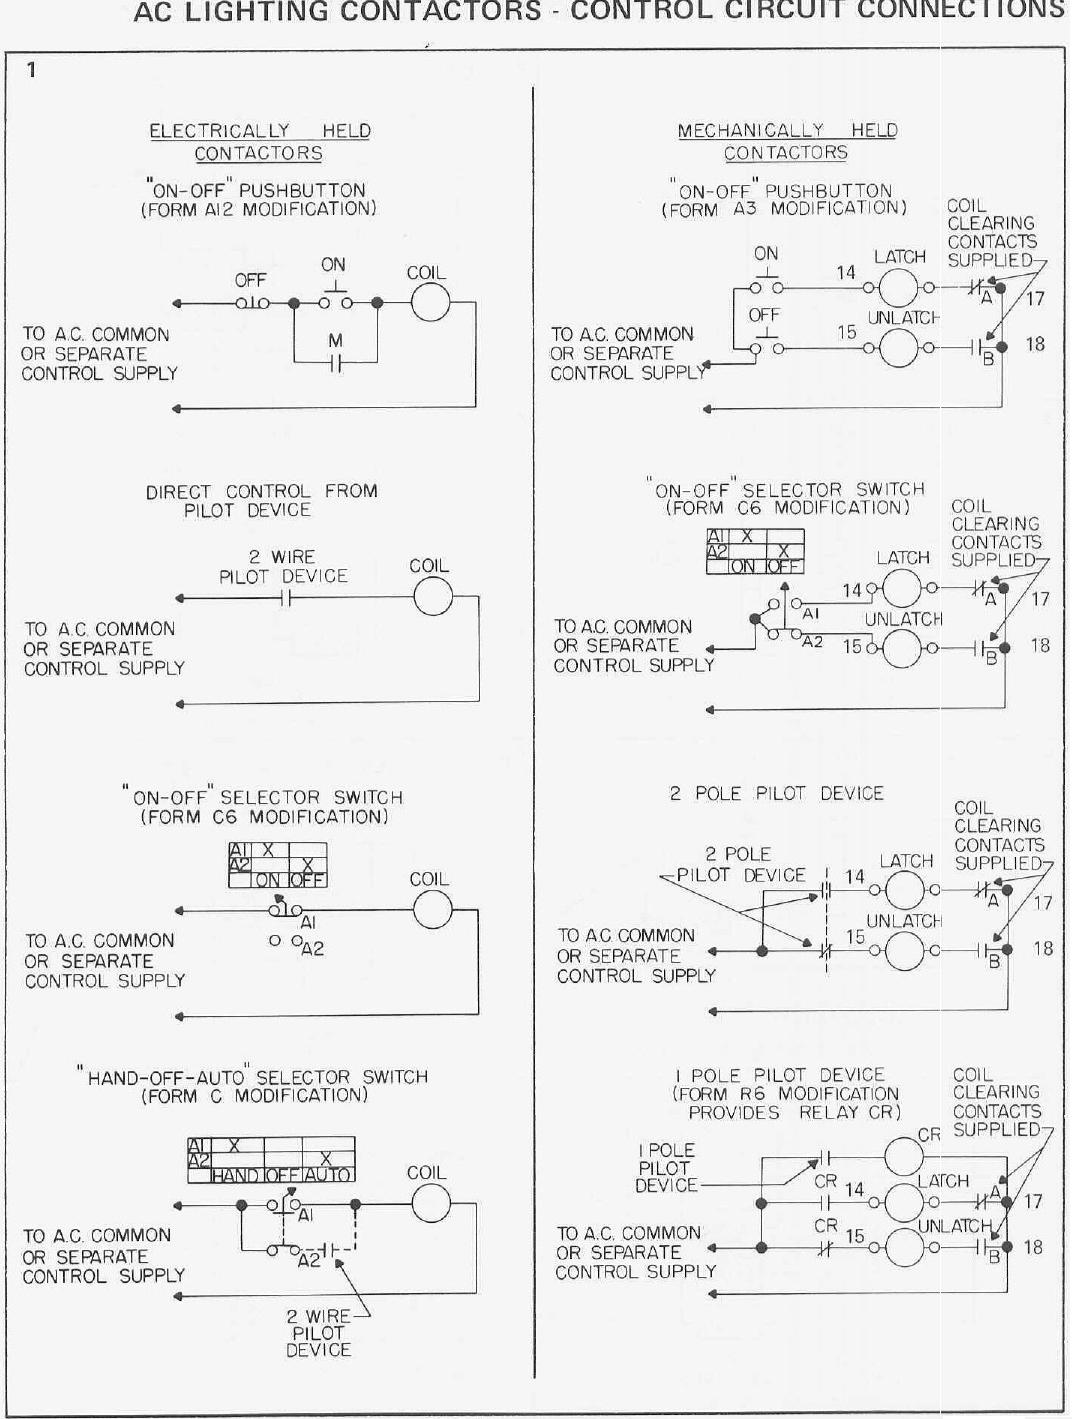 Yale Serial Number Model furthermore Maxresdefault moreover Wiringdiagram moreover  as well Volvo Trucks Fl Fl Fl Wiring Diagram X. on clark wiring diagram